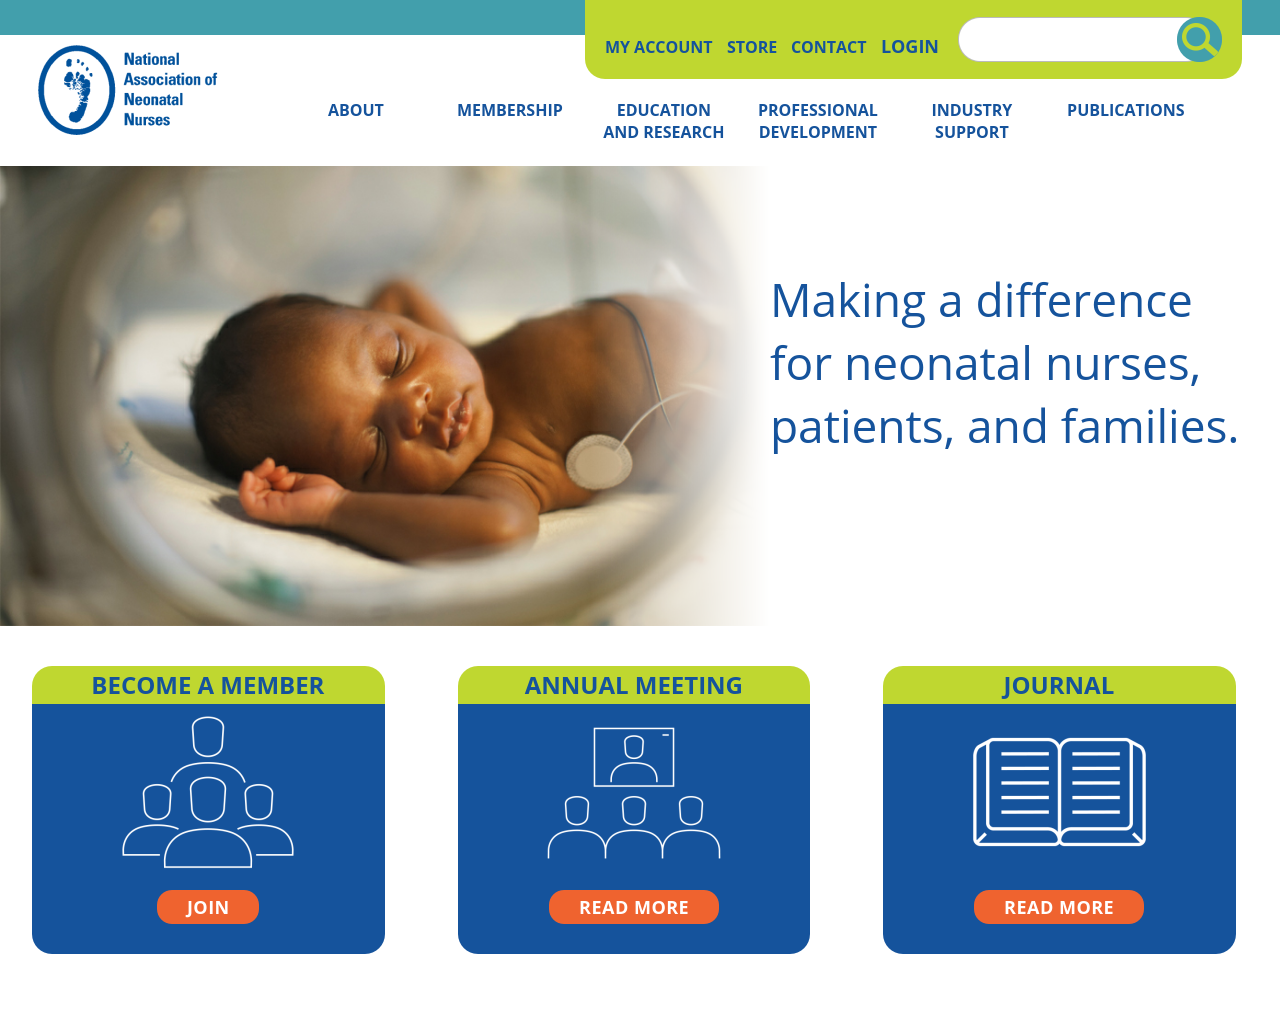 National-Association-of-Neonatal-Nurses-Advertising-Reviews-Pricing